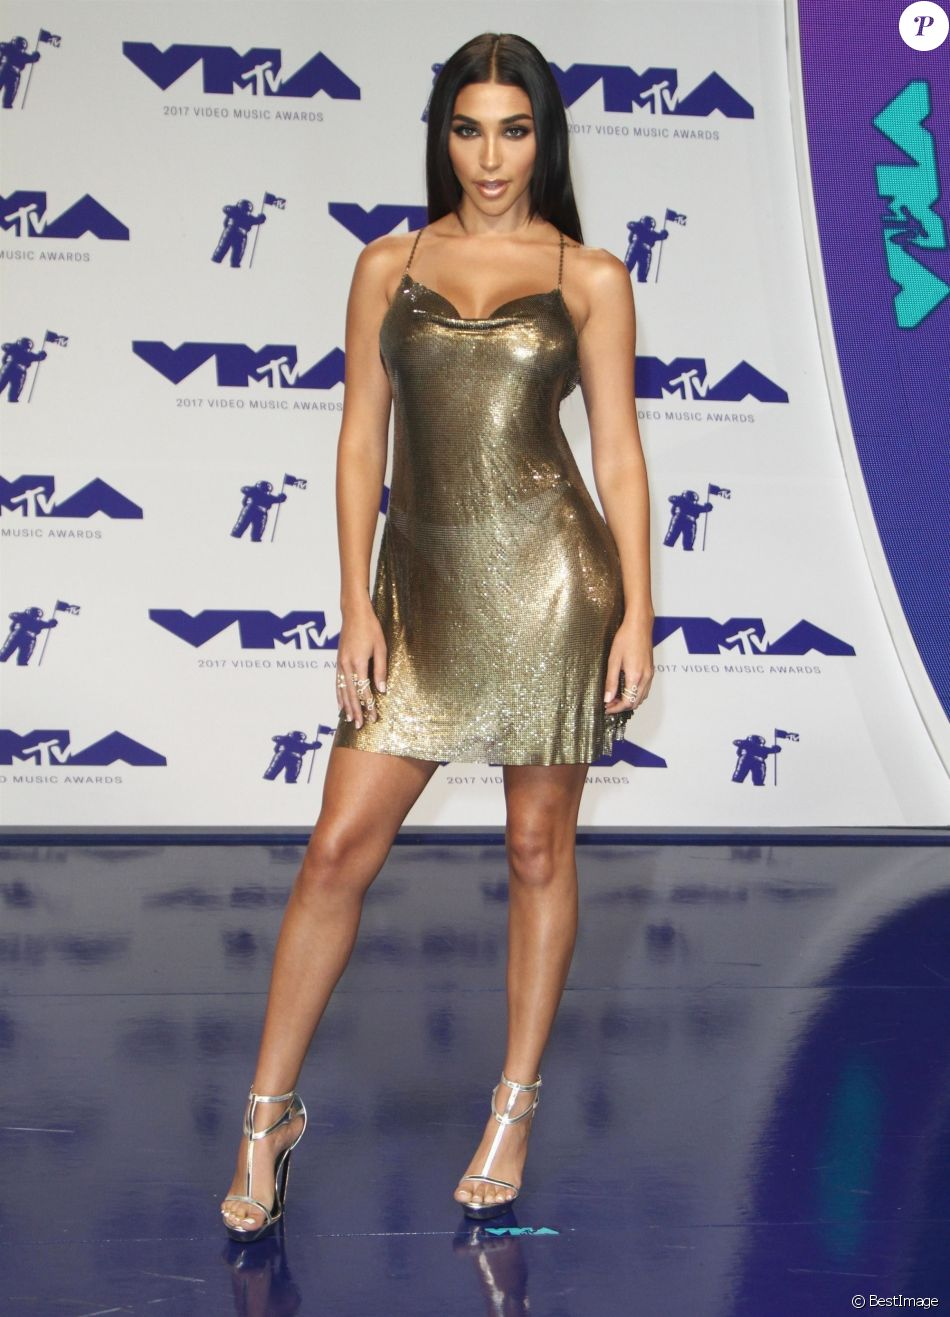 Chantel Jeffries à la soirée MTV Video Music Awards 2017 au Forum à Inglewood, le 27 août 2017  People at the 2017 MTV Video Music Awards held at the Forum. August 27, 201727/08/2017 - Los Angeles